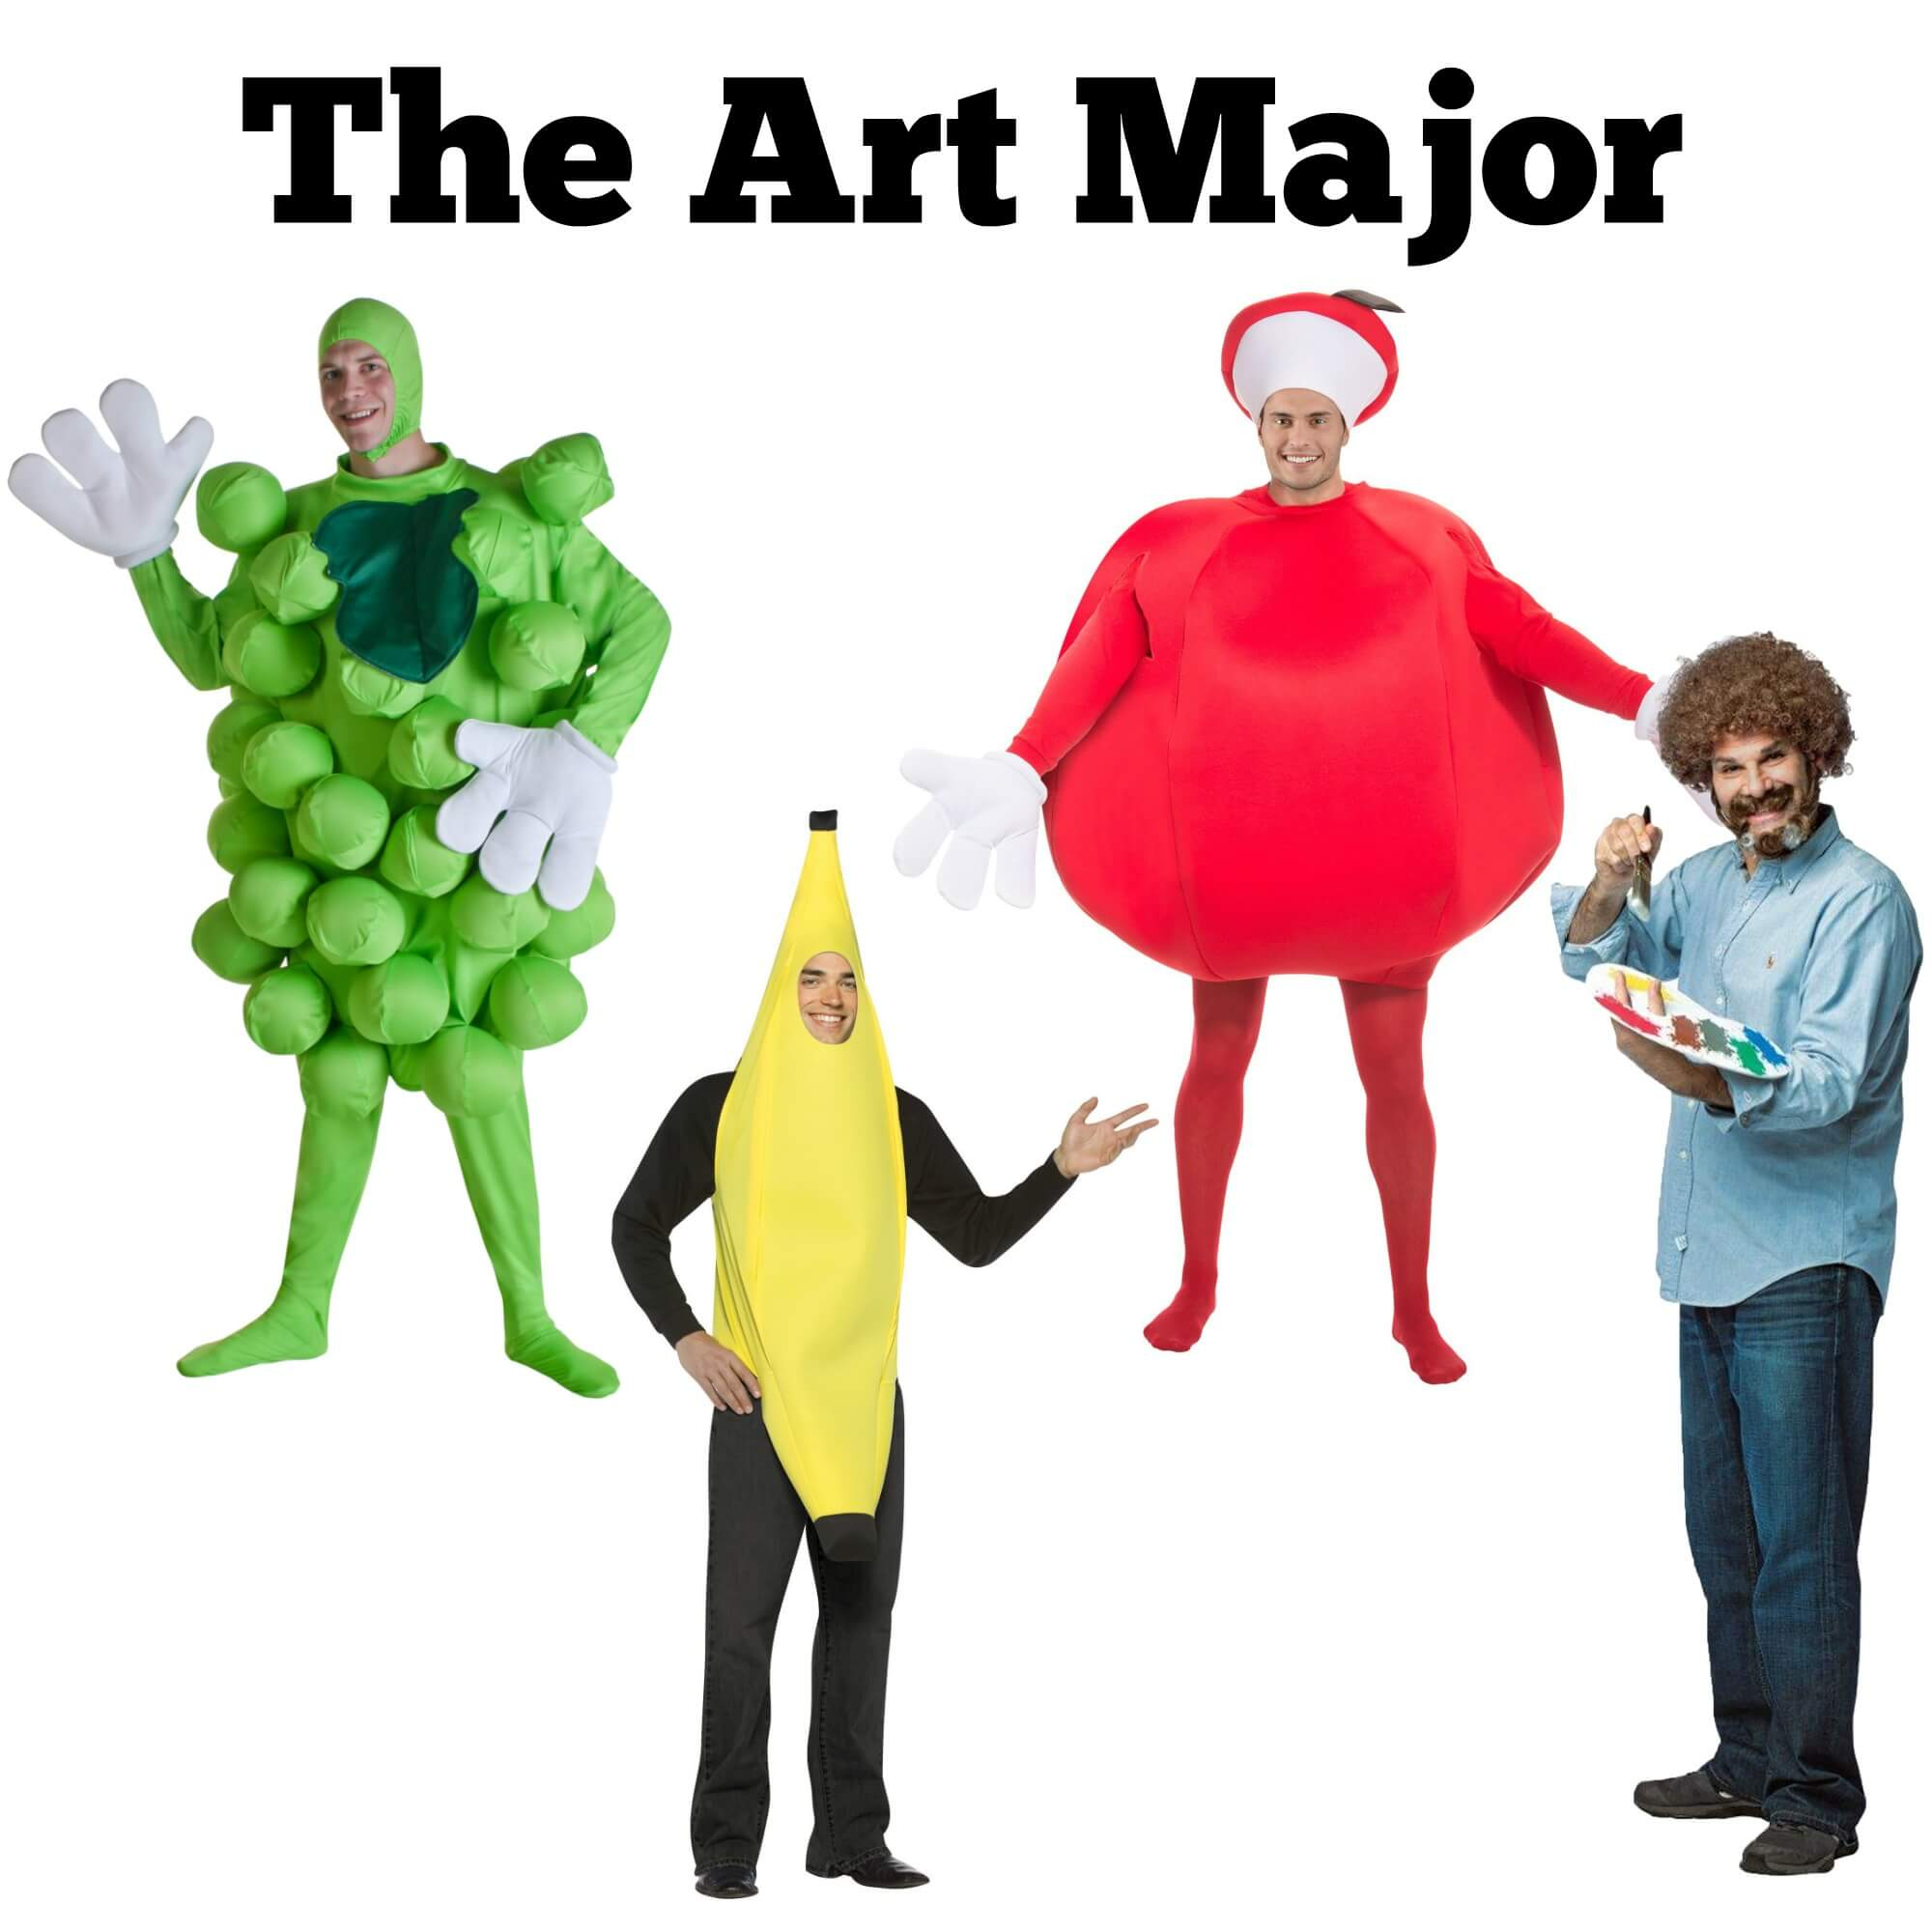 Halloween costume ideas for the Art major